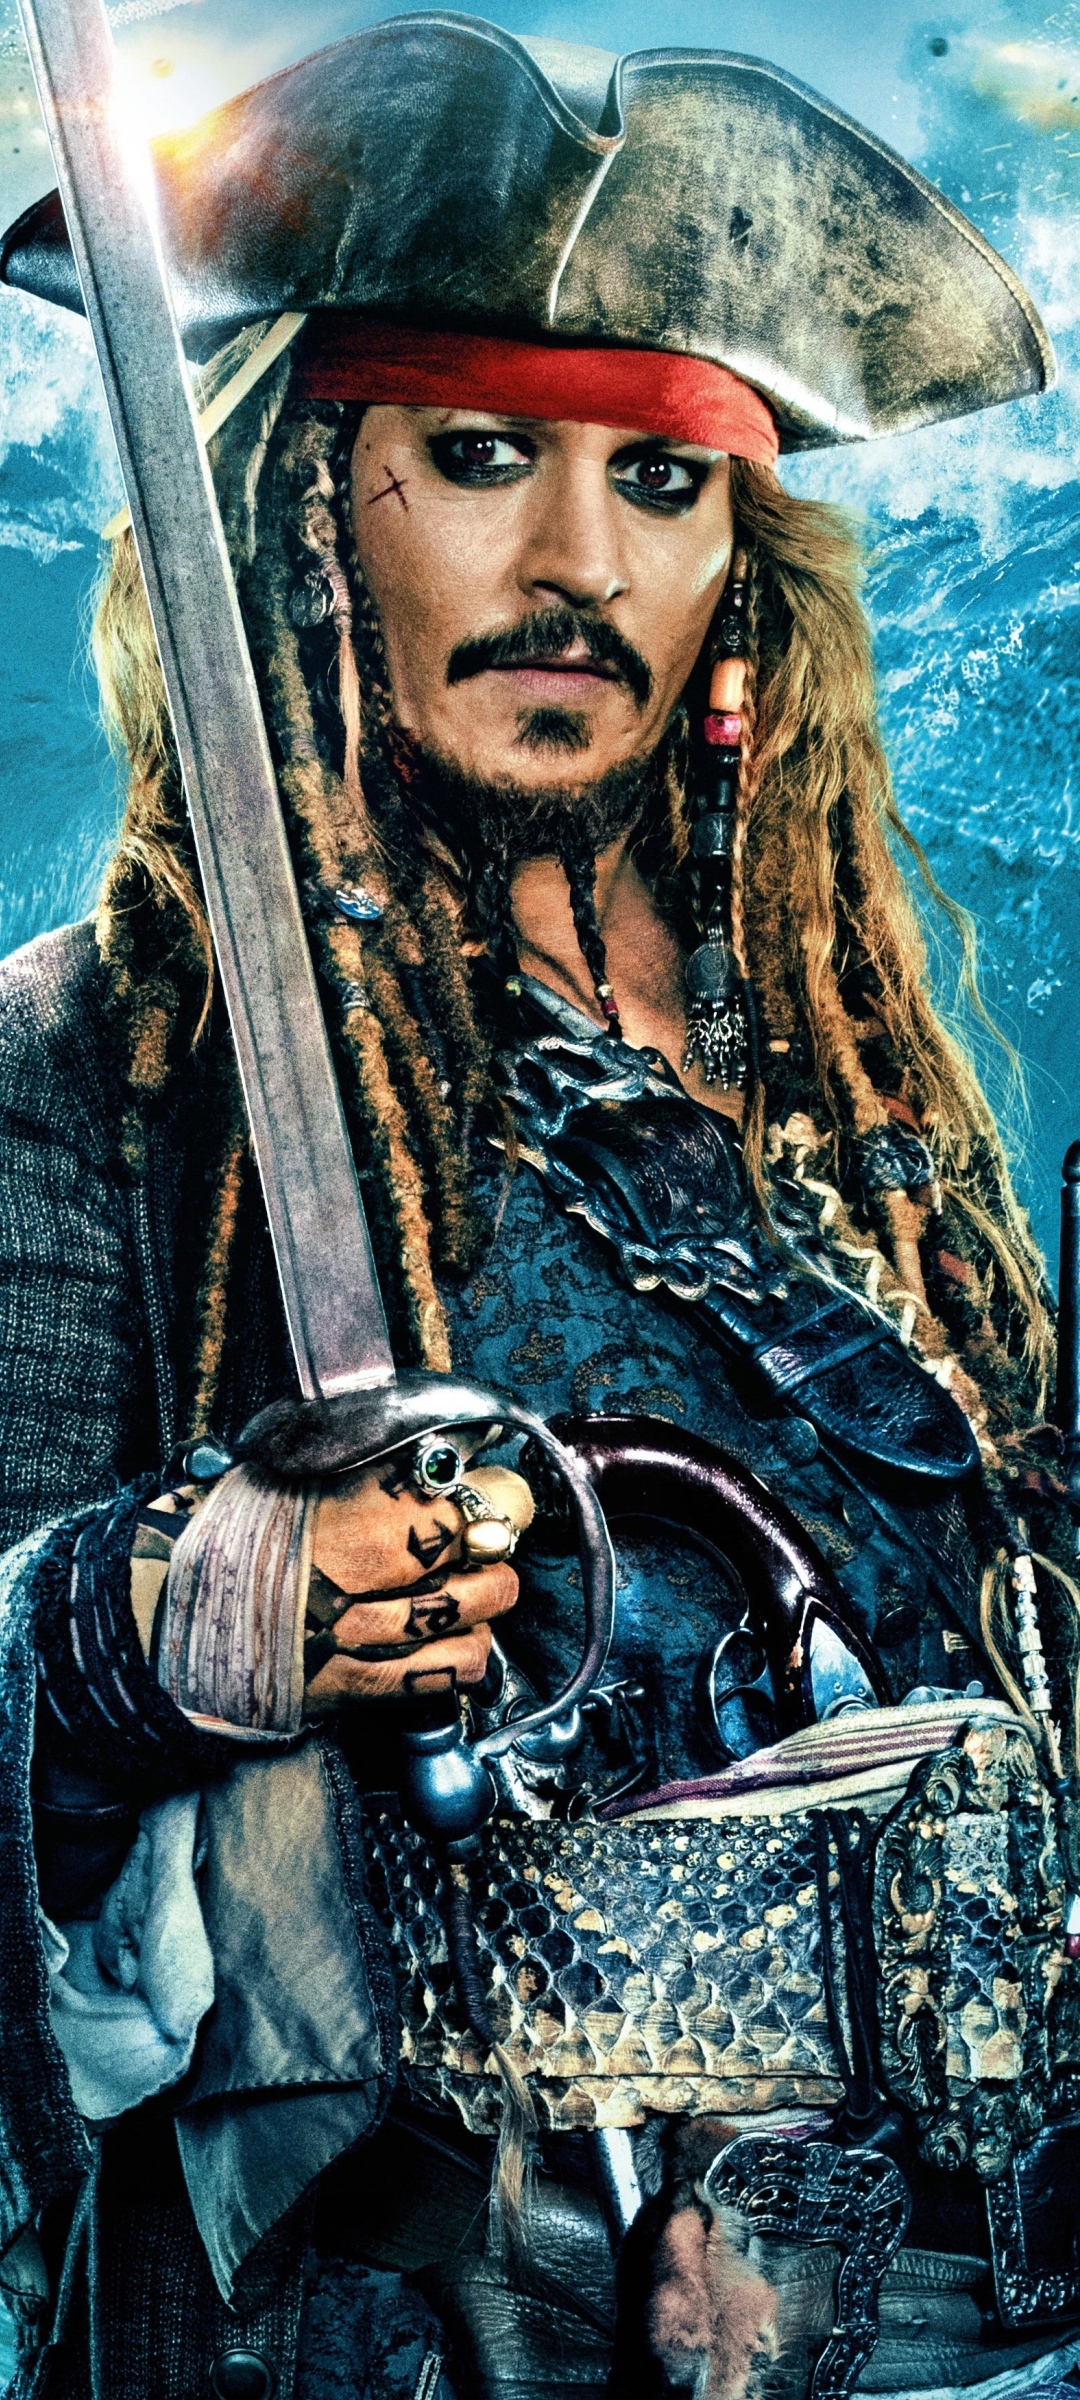 1080x2400 Johnny Depp As Jack Sparrow In Pirates Of The Caribbean Dead Men Tell No Tales 1080x2400 Resolution Wallpaper Hd Movies 4k Wallpapers Images Photos And Background